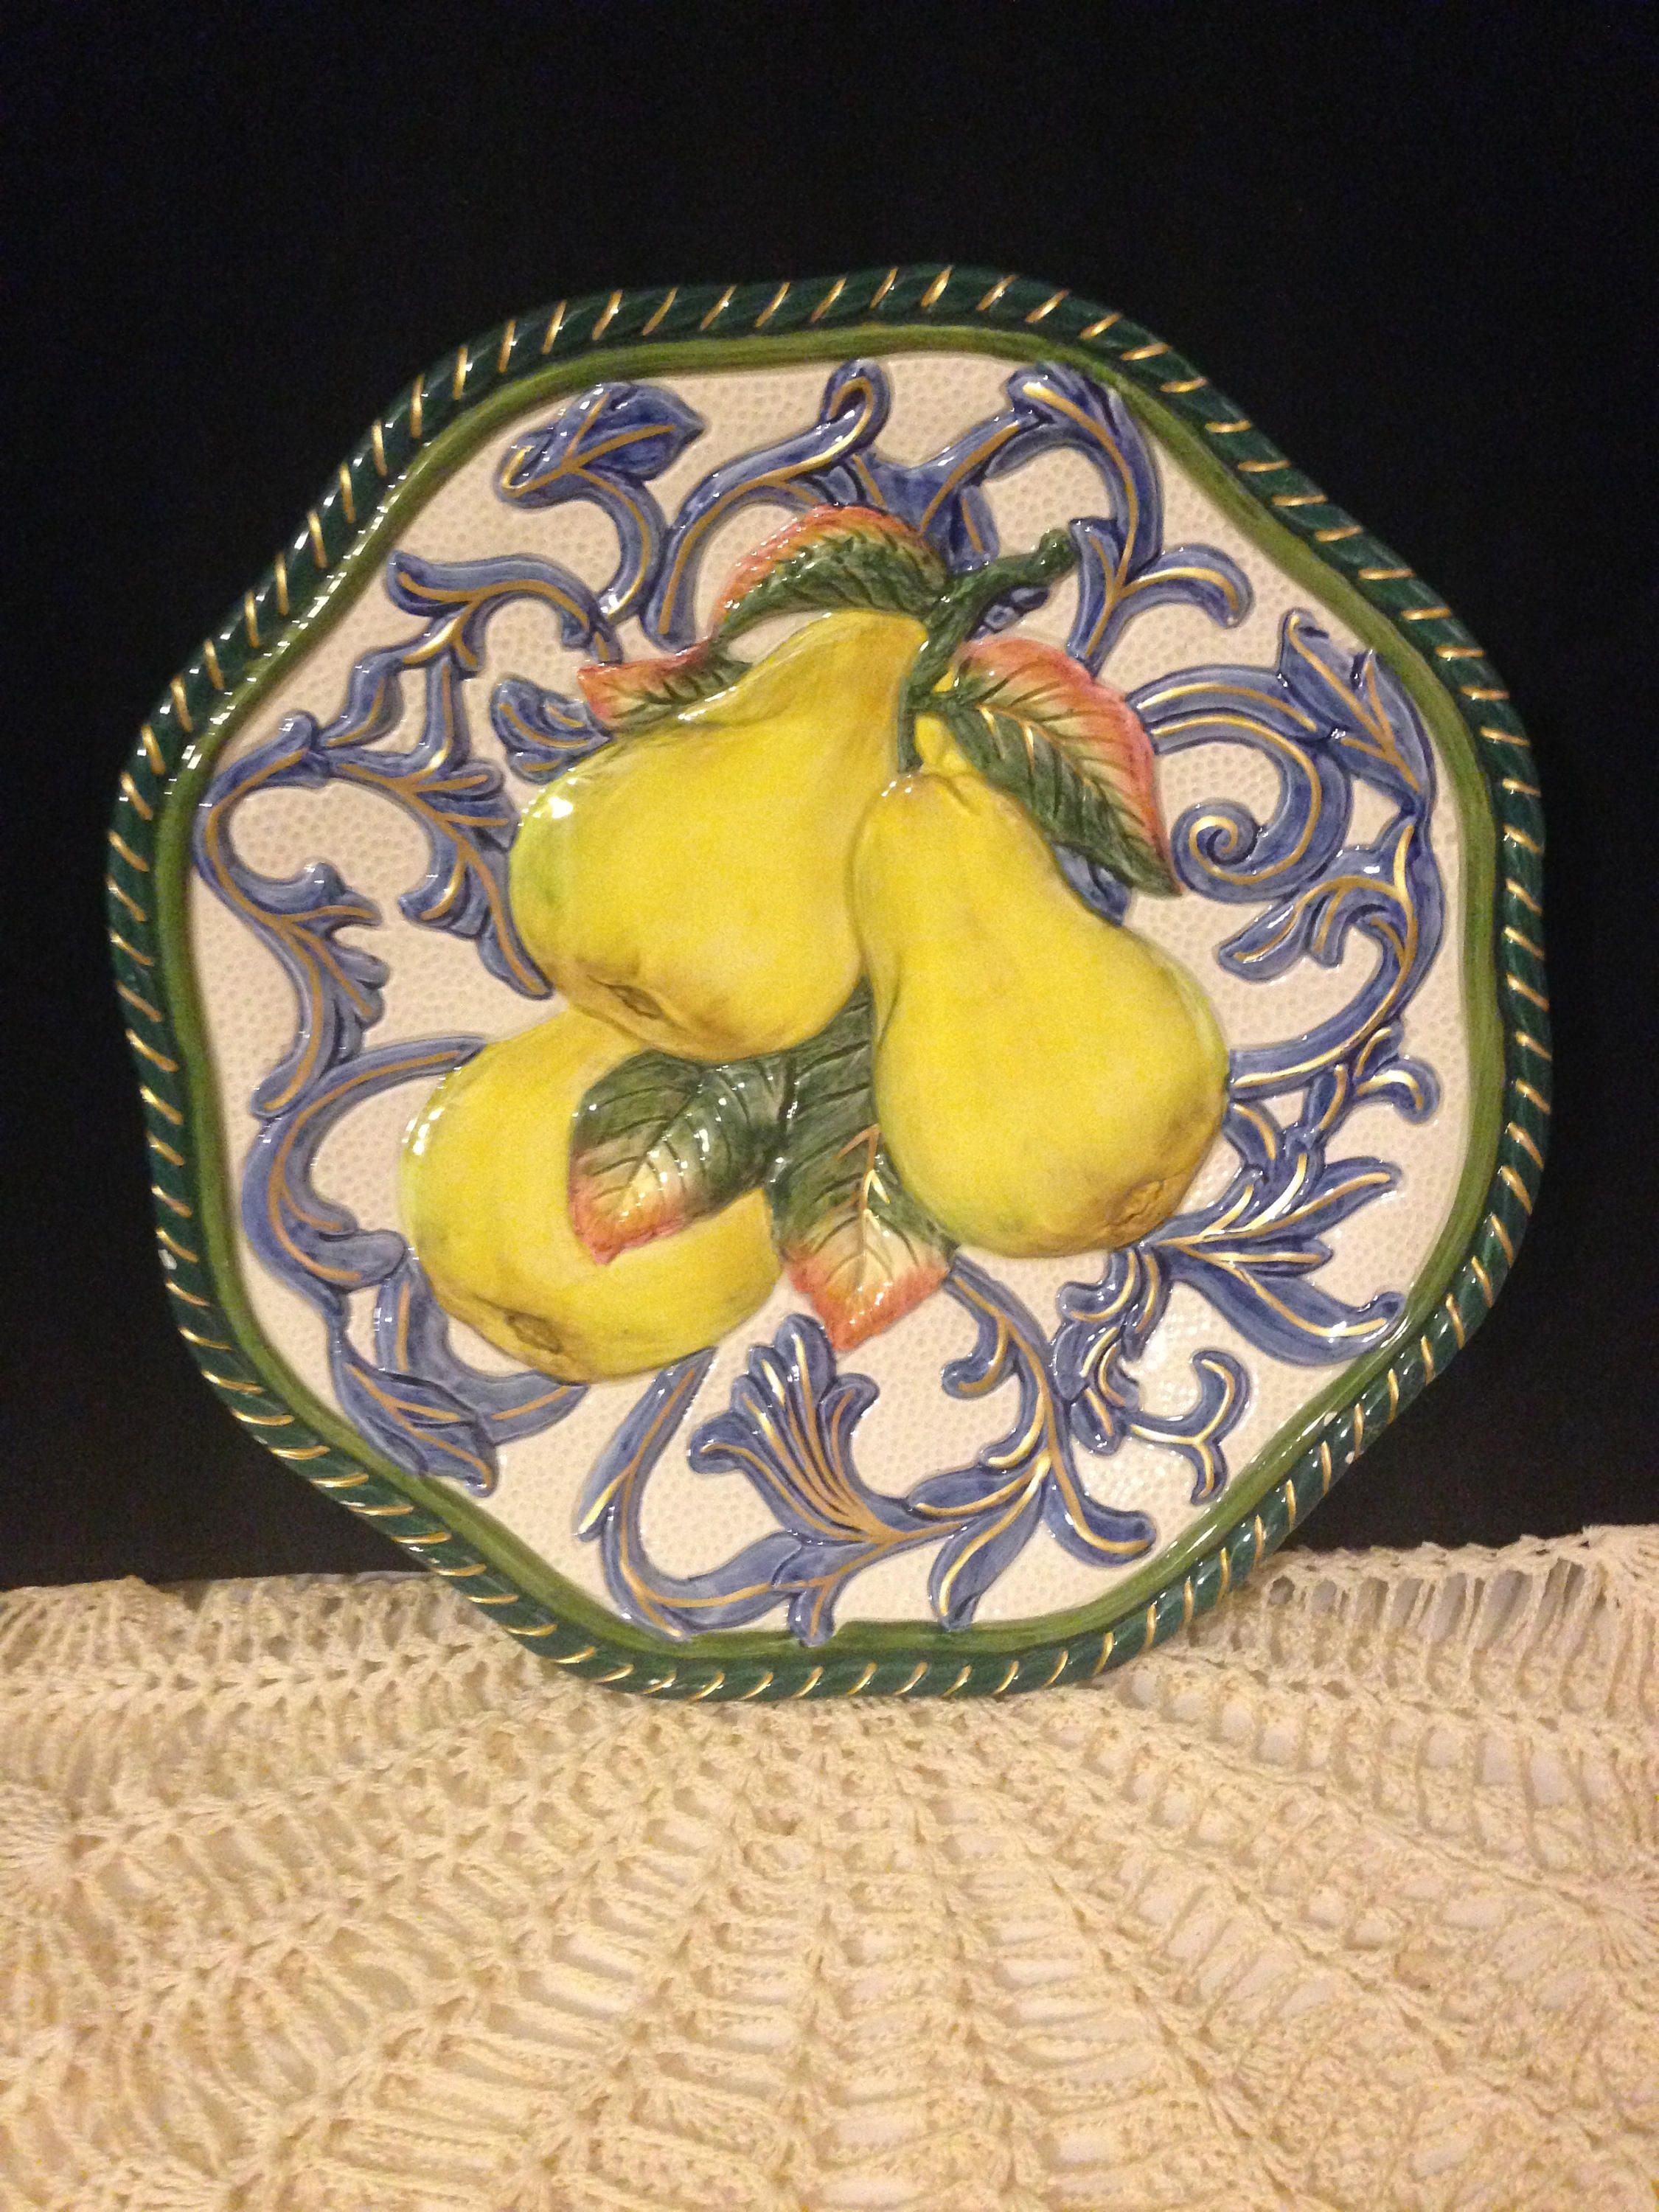 Fitz and Floyd Plate~ Golden Pears, Decorative Plate, Colorful ...